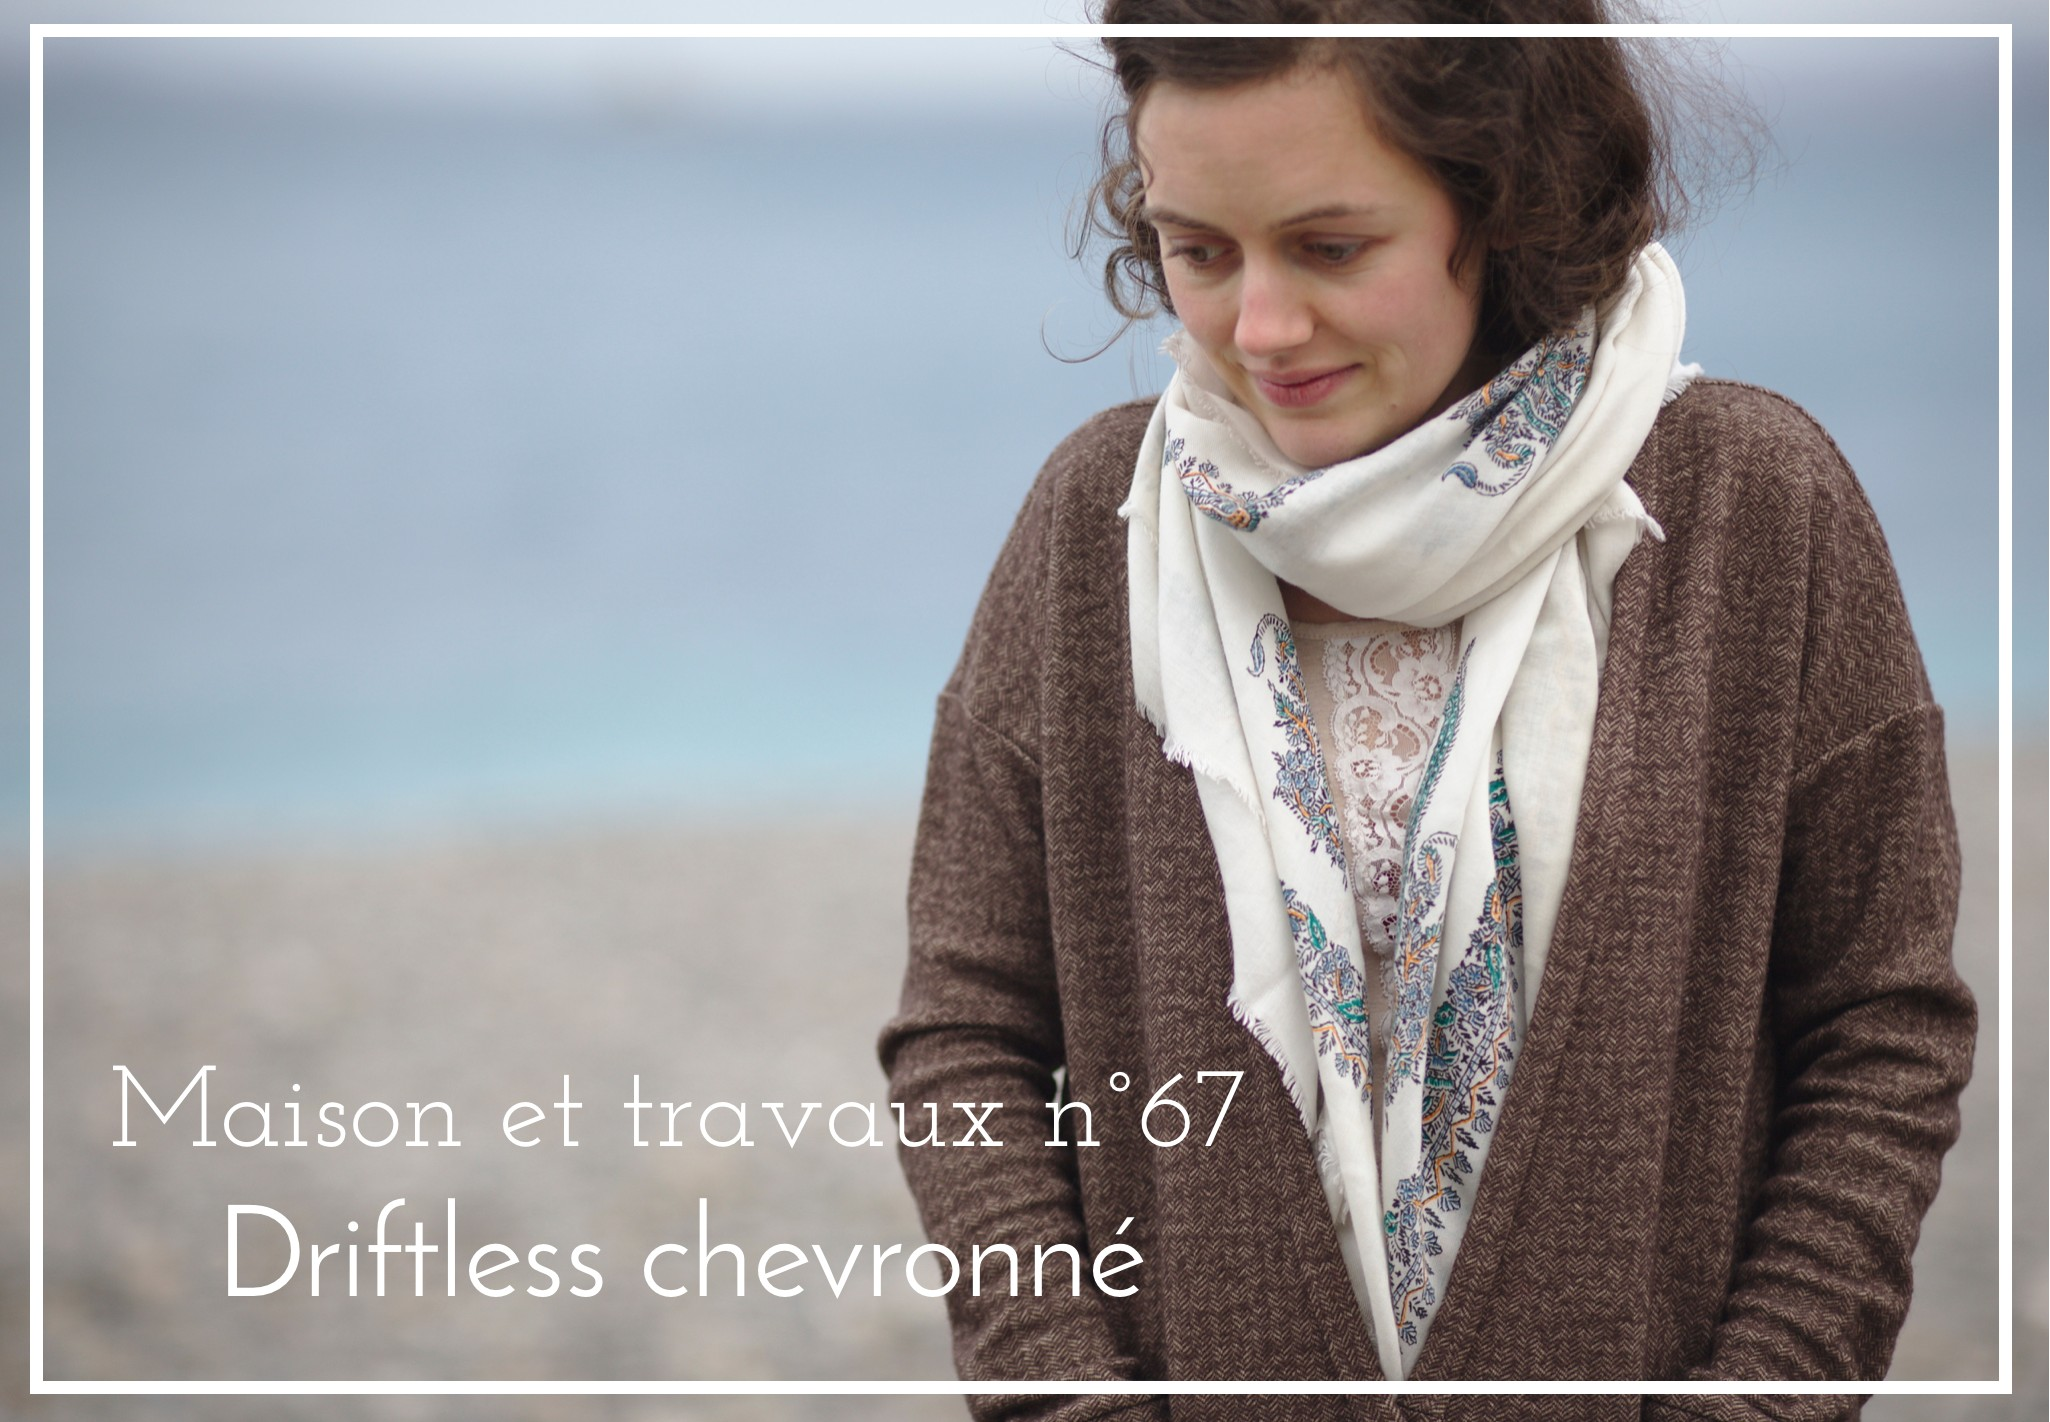 La muse au placard - Driftless cardigan - Grainline studio